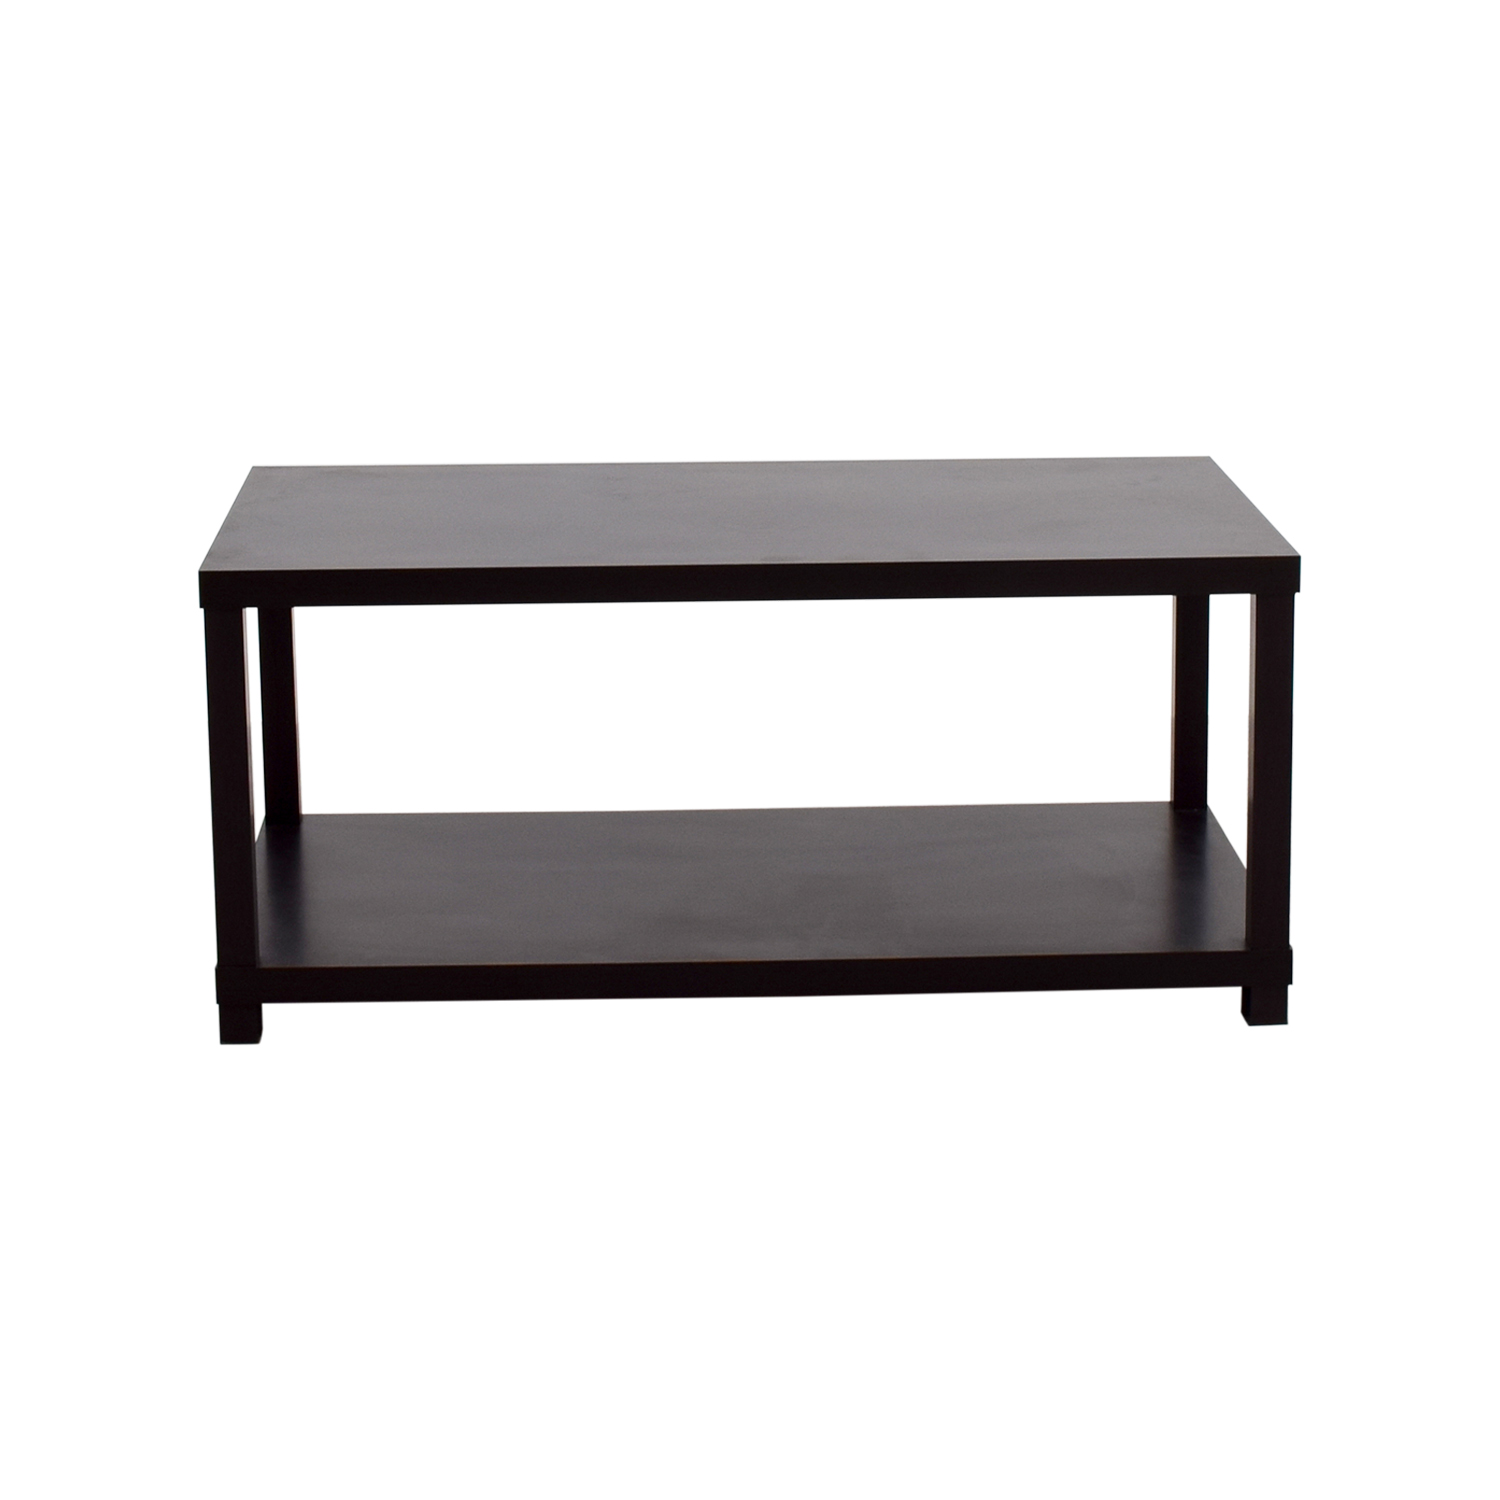 Acme Acme Wood Espresso Coffee Table nj